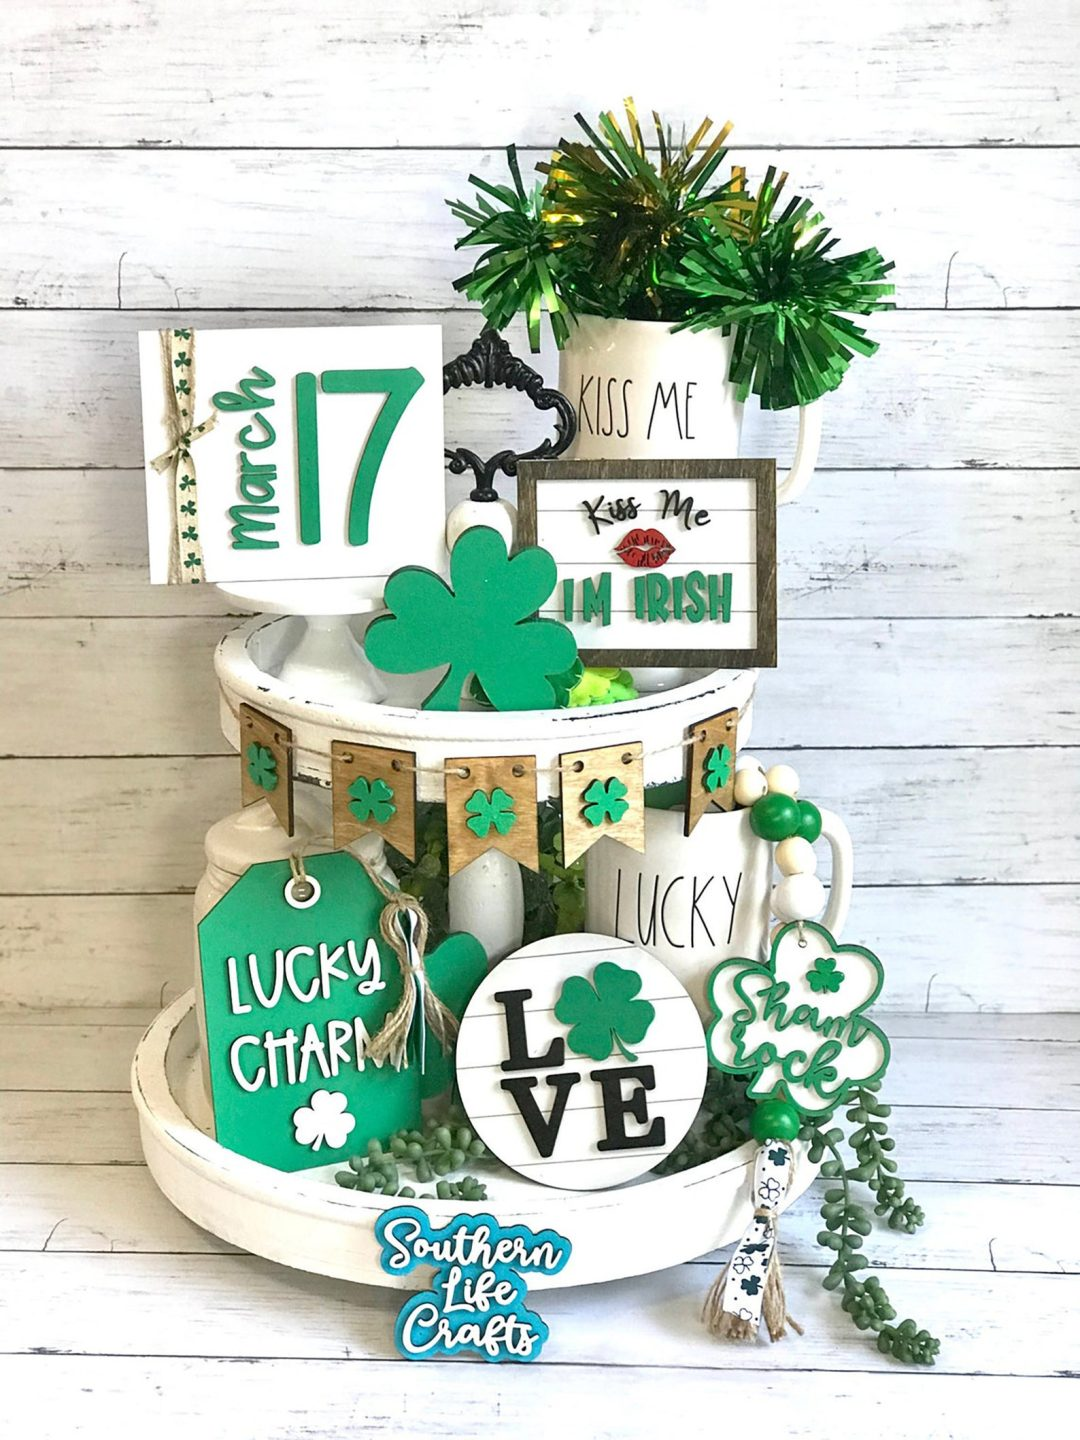 St. Patrick's Day decor ideas - wooden signs